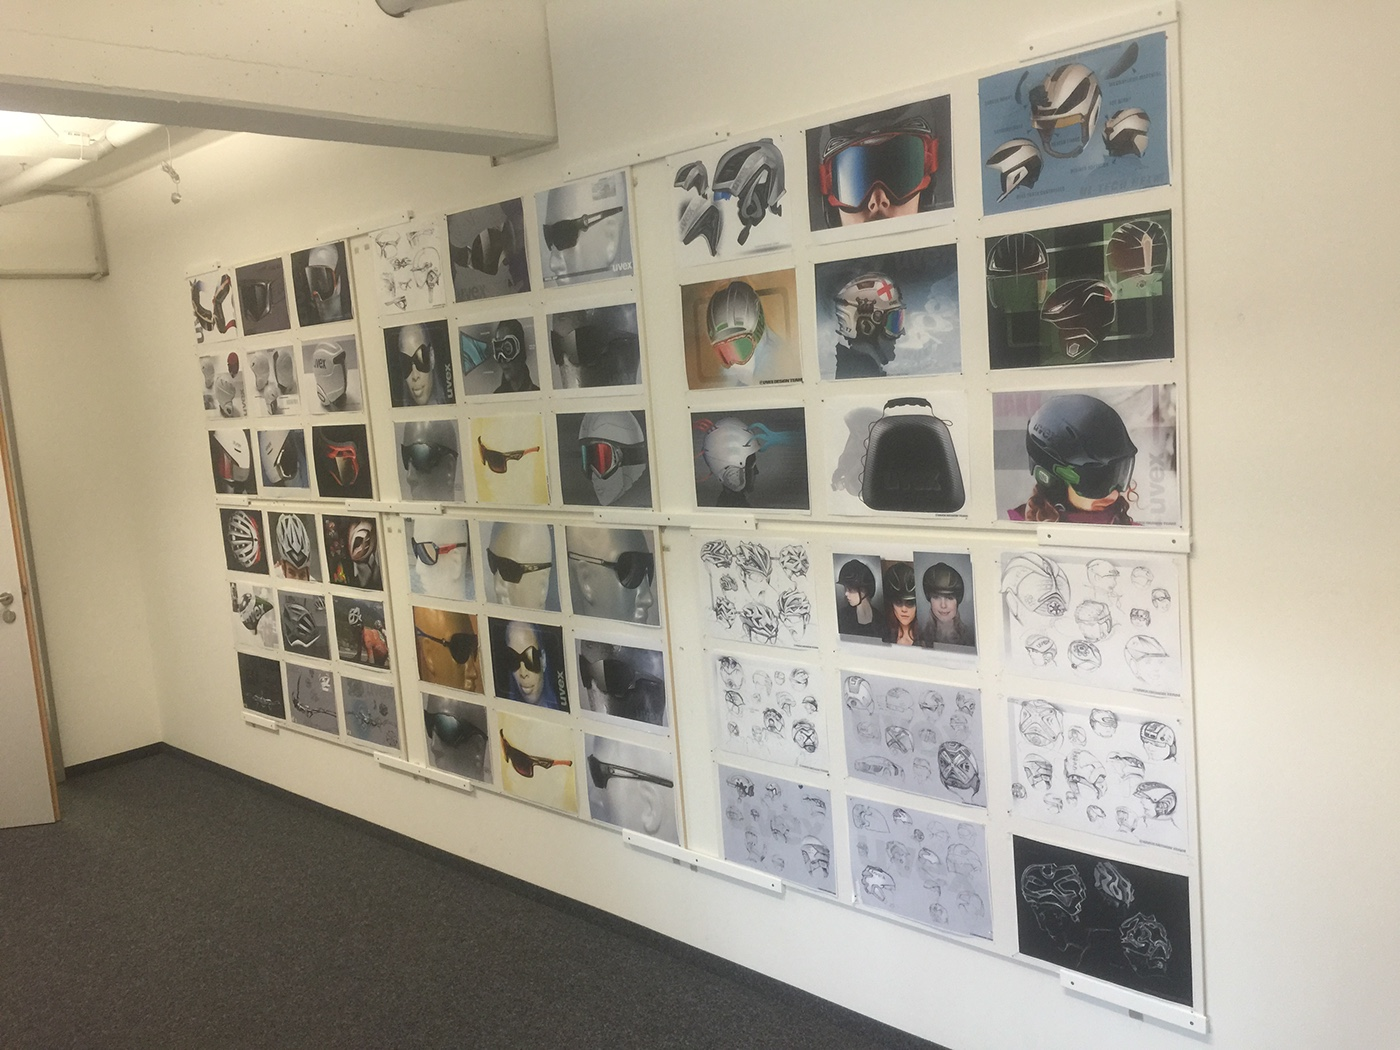 Noah Sussman Sports Product designer sketch wall at design office helmet Uvex sports